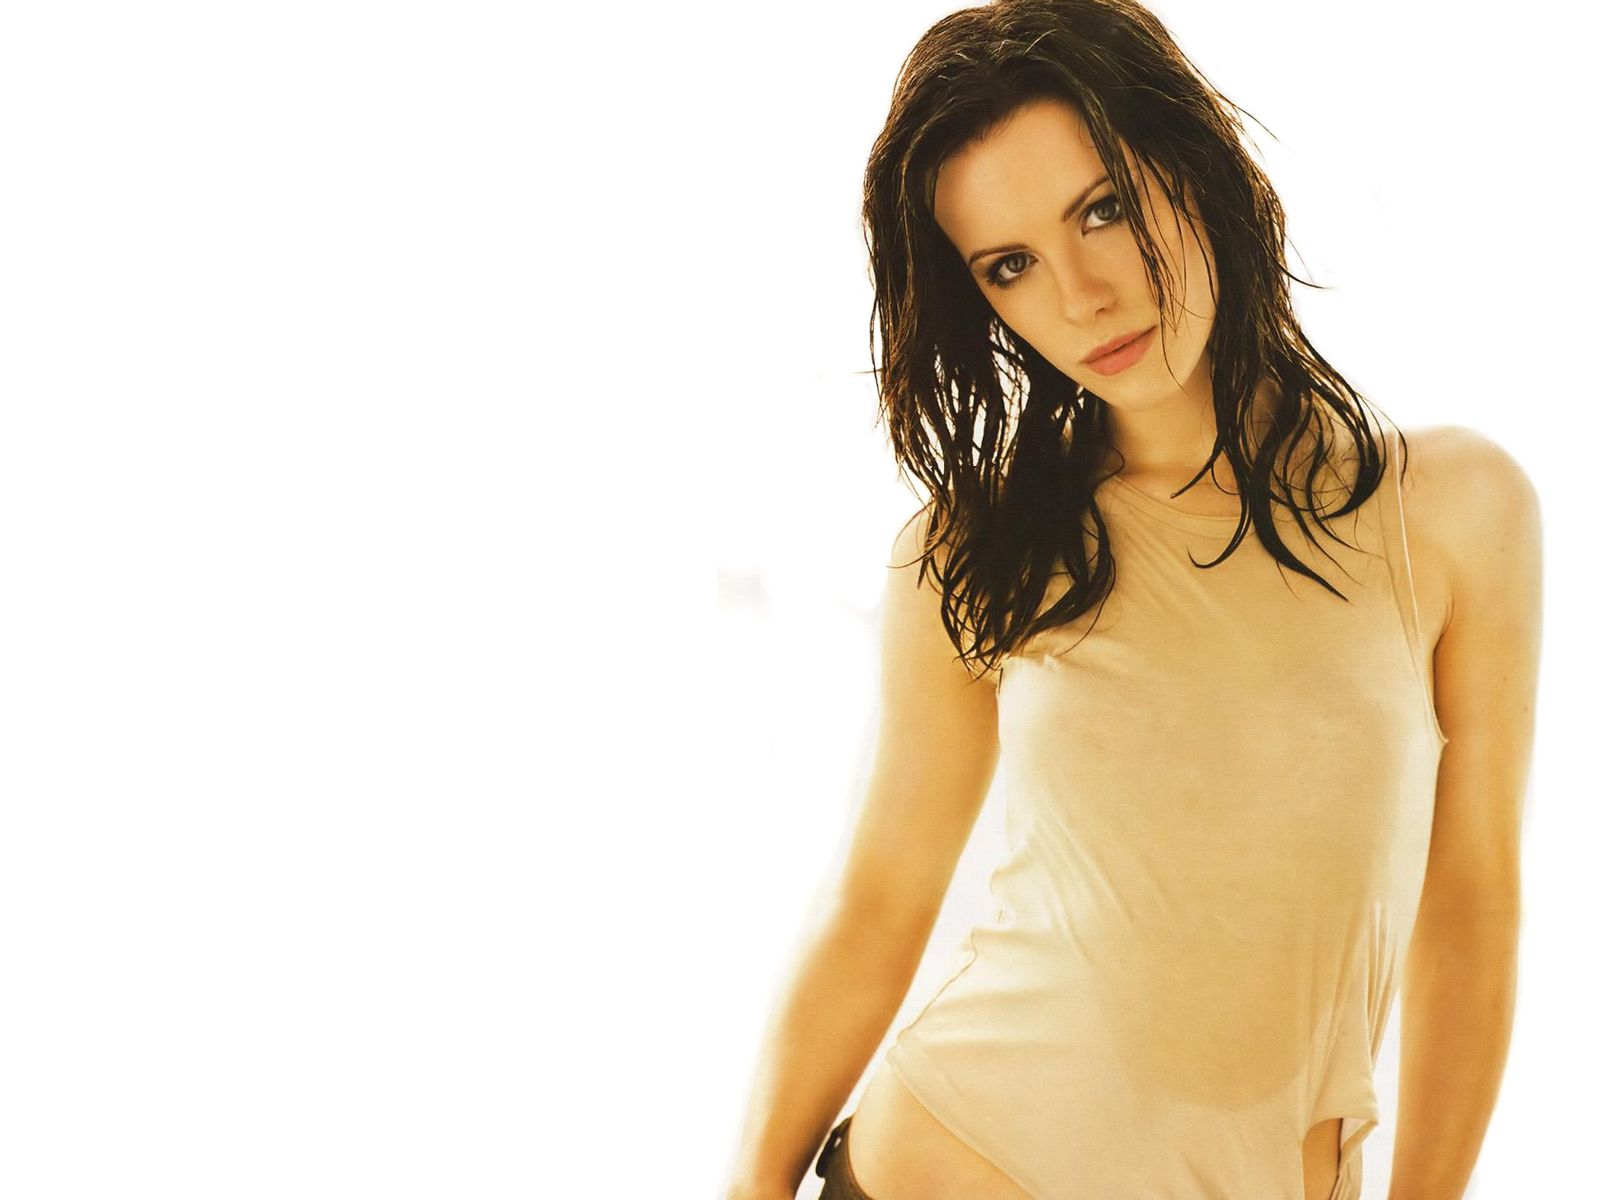 Kate beckinsale wallpapers - Celeb wallpapers ...